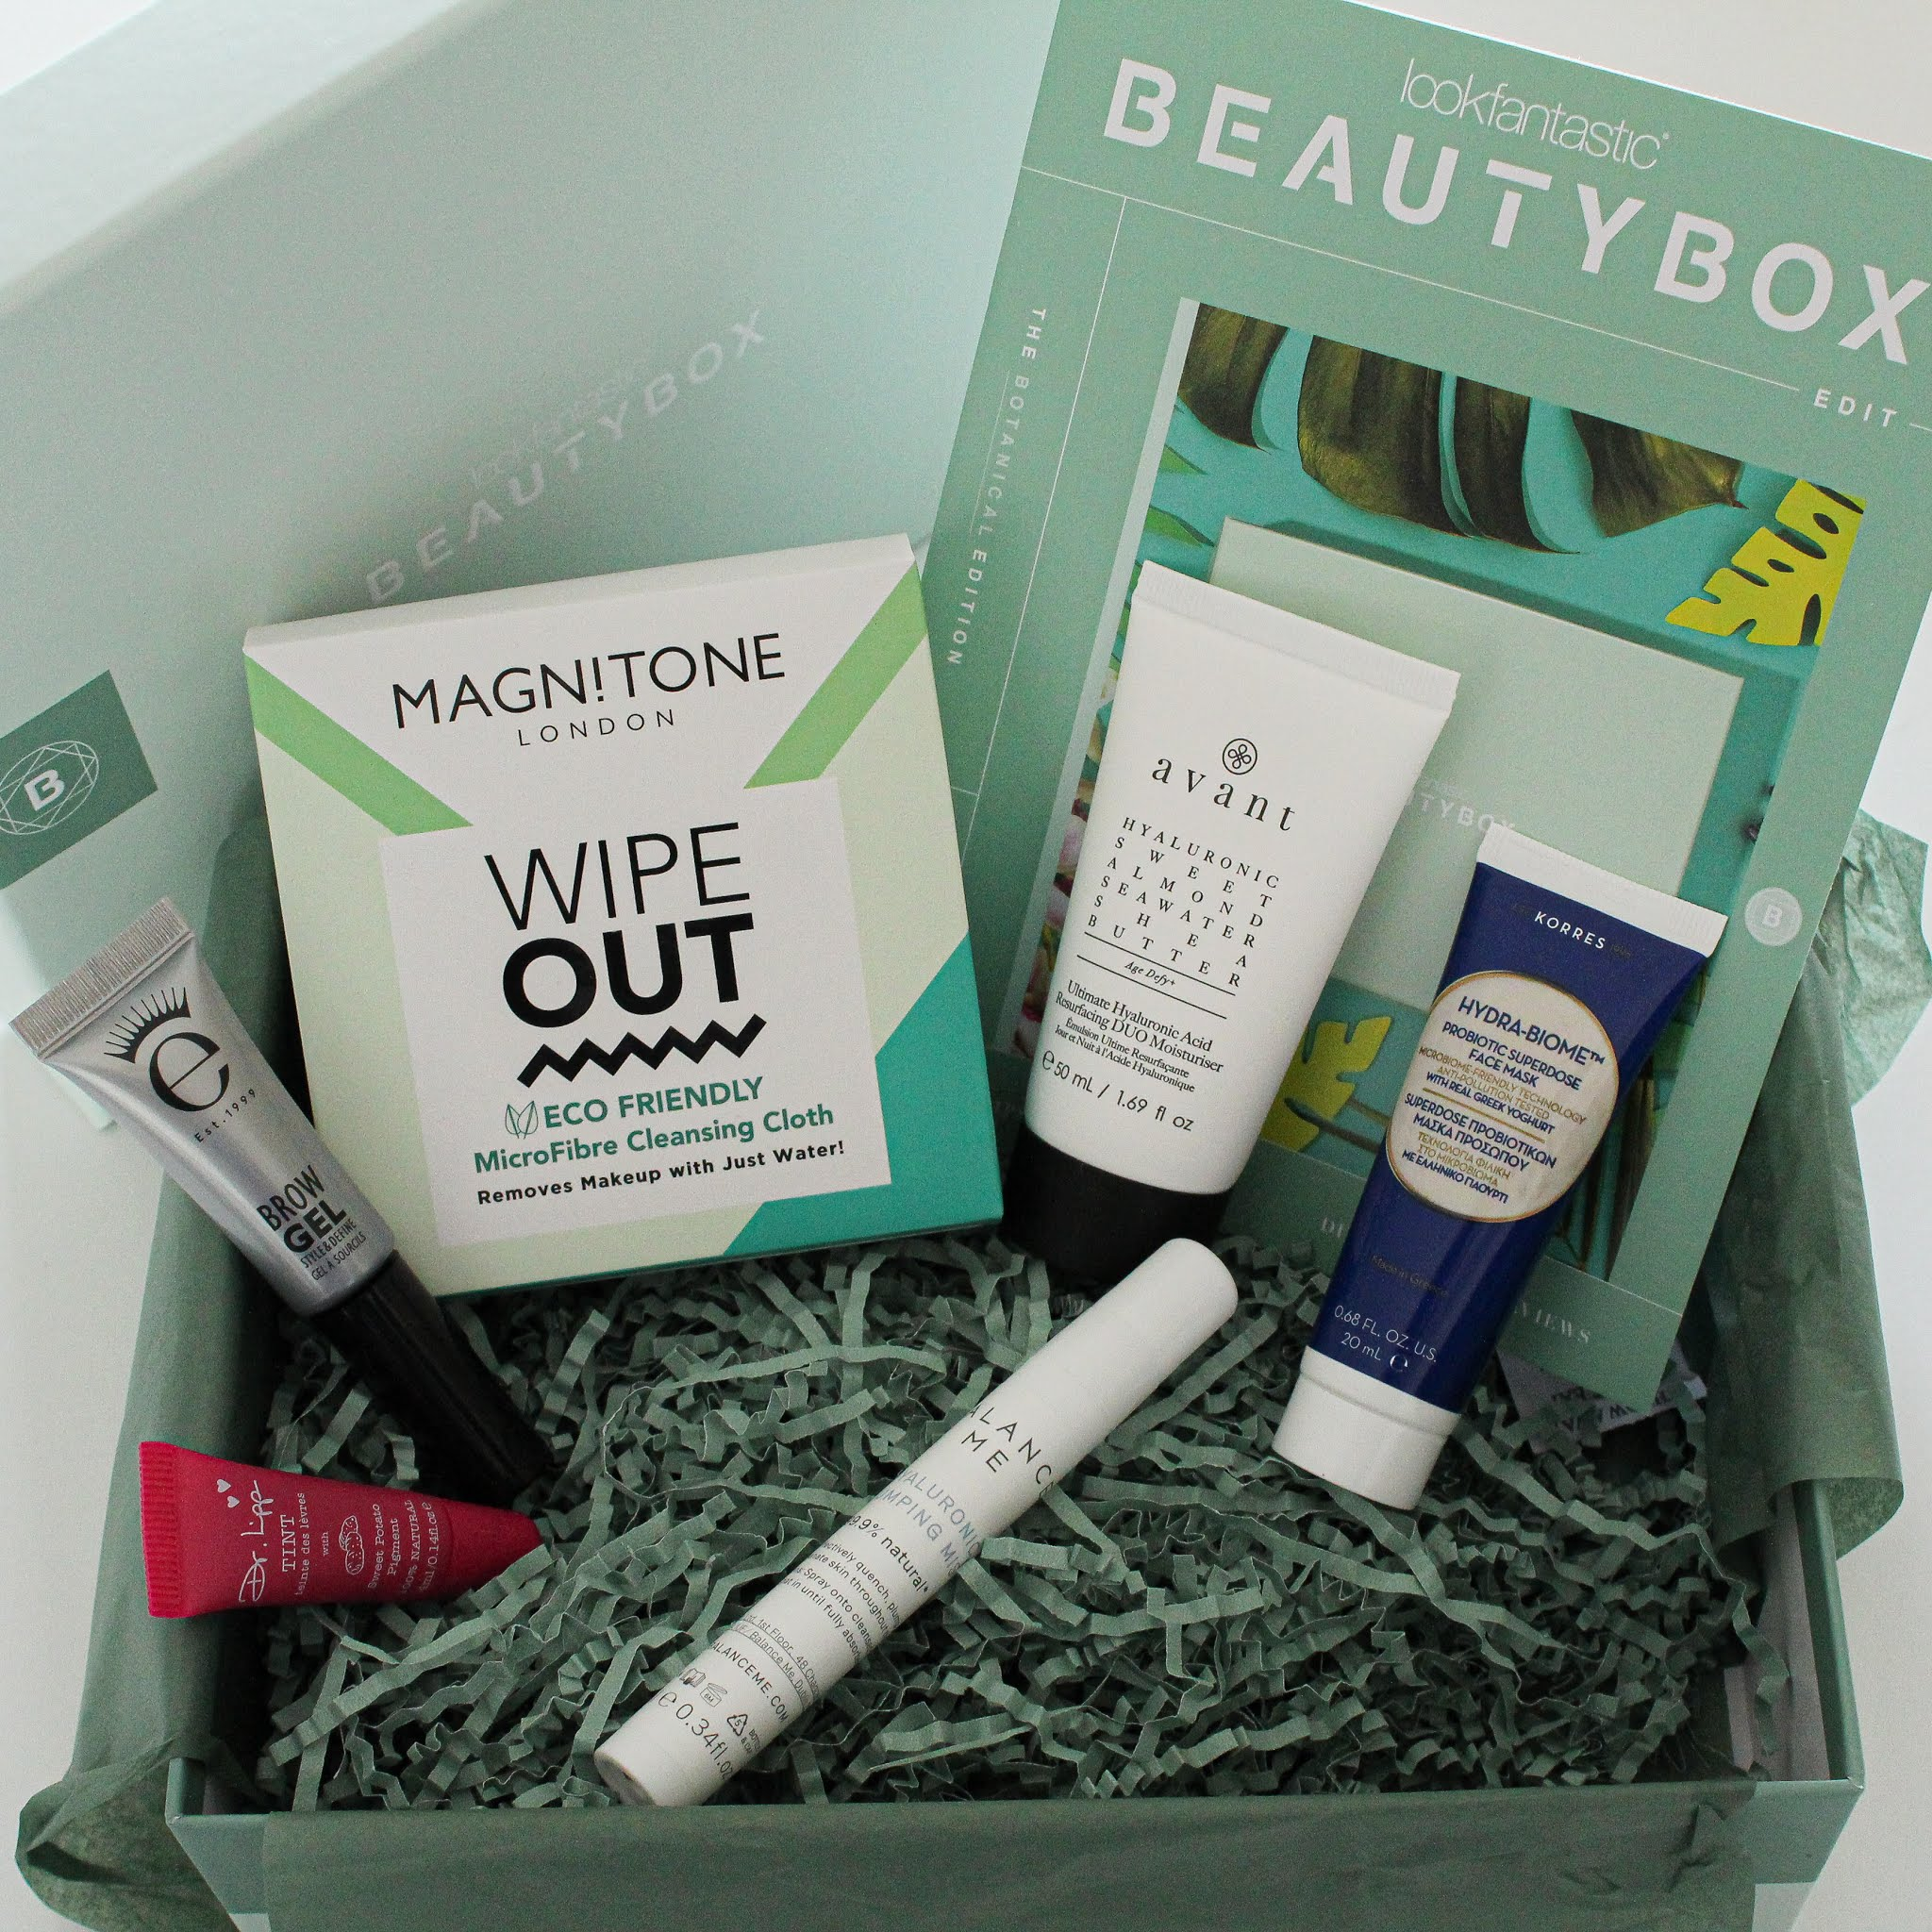 BEAUTYBOX MAIO 2020 - LOOKFANTASTIC